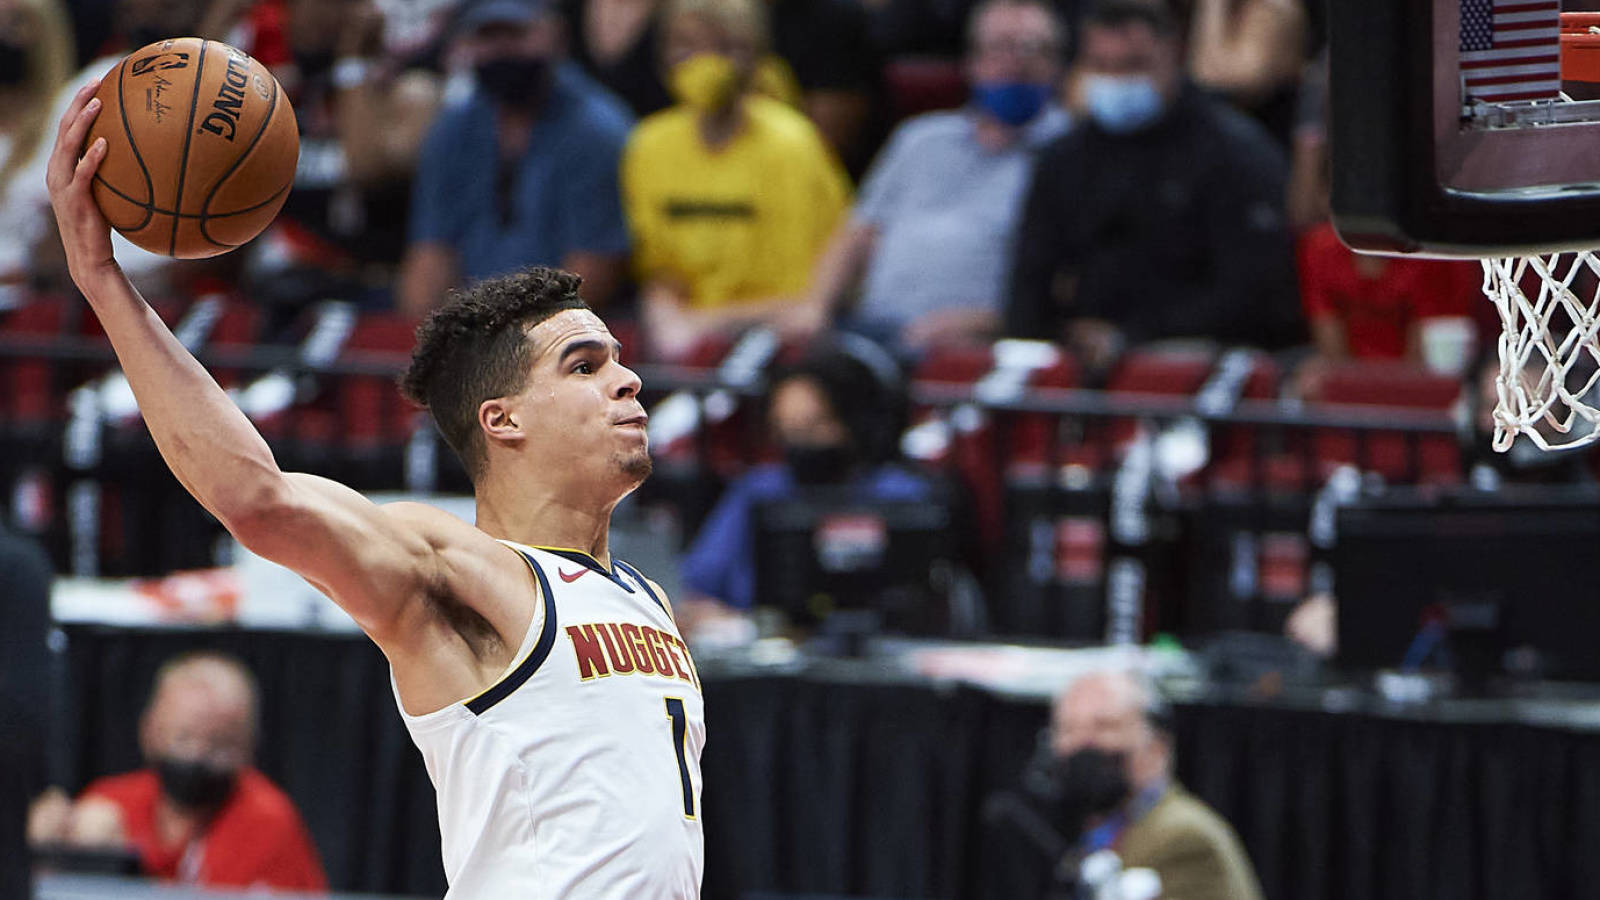 Michael Porter Jr. explains why he is happy the Clippers passed on drafting him - Yardbarker